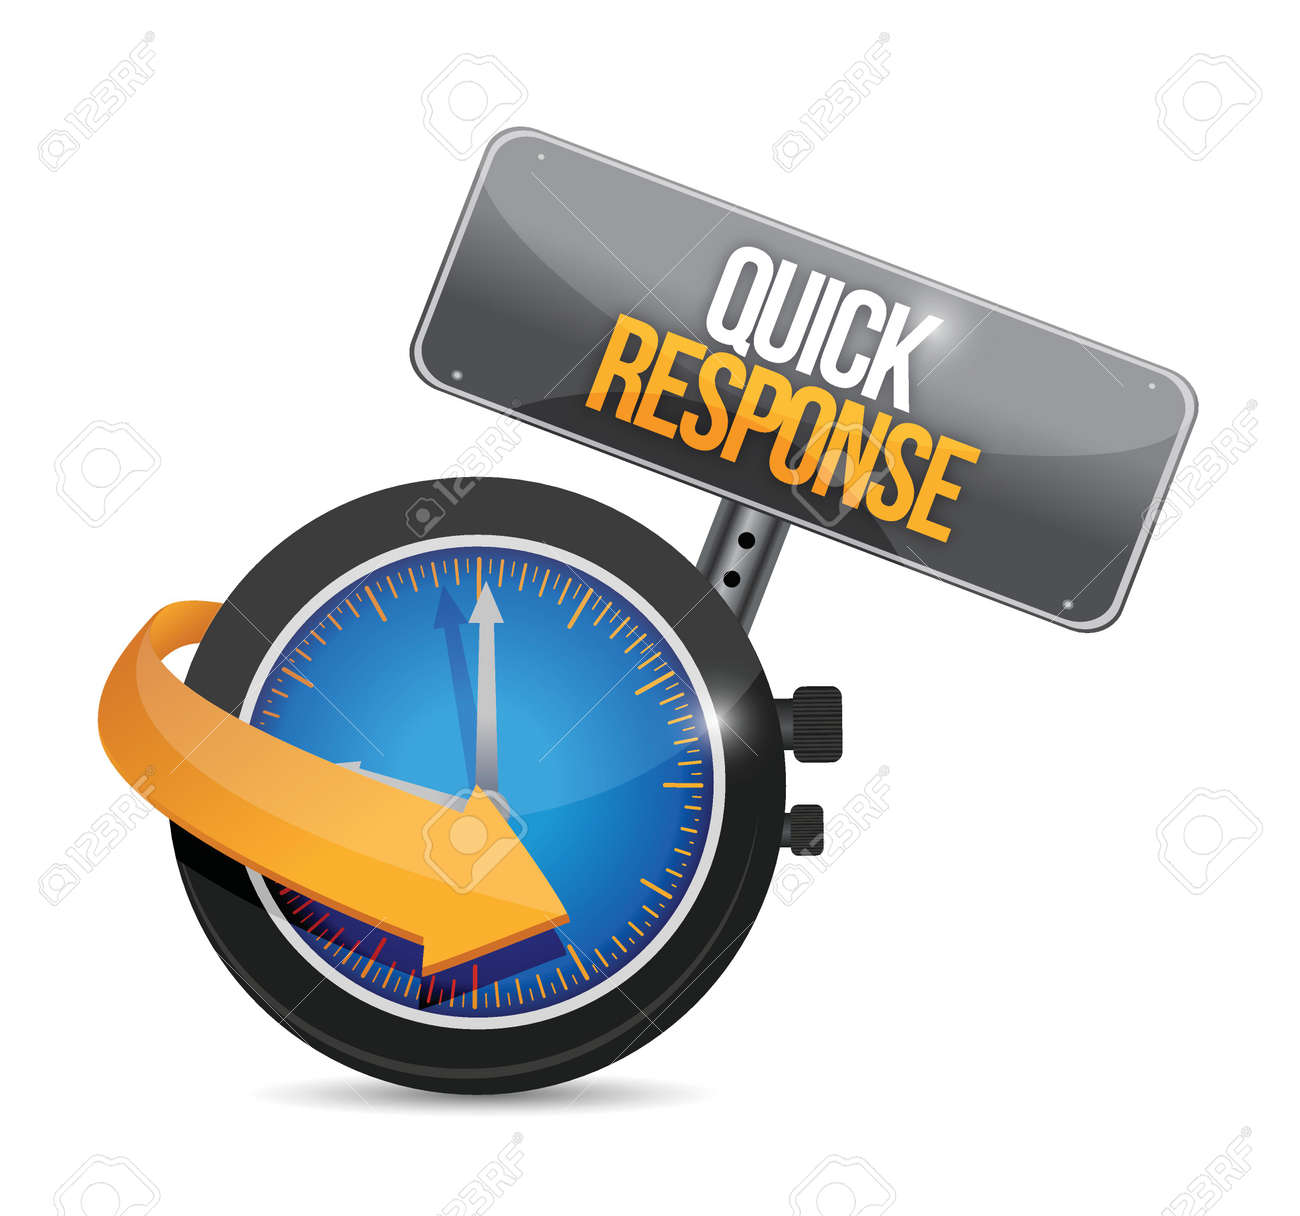 Quick Response Images & Stock Pictures. Royalty Free Quick ...